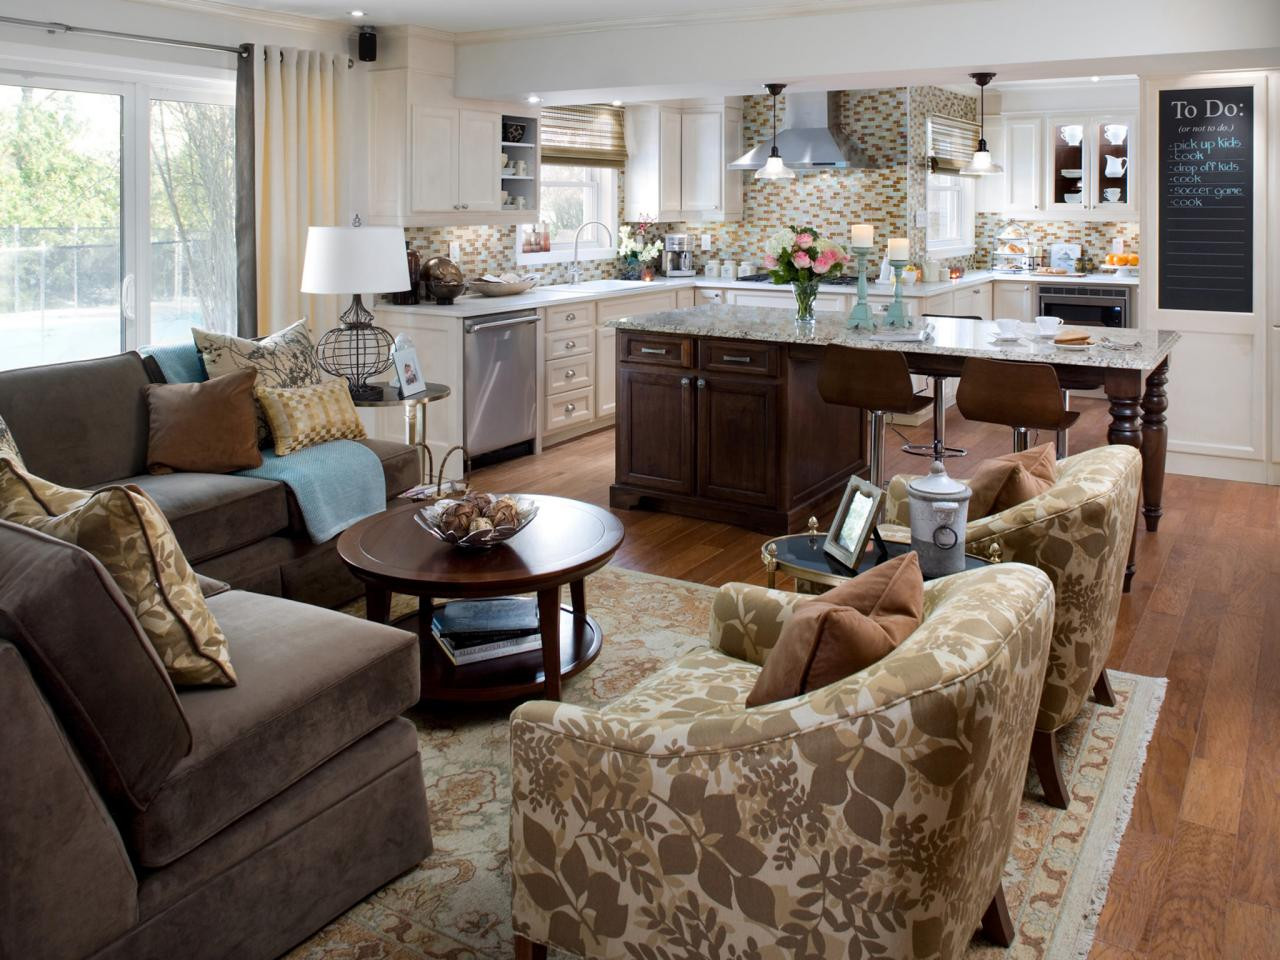 Best ideas about Kitchen Open To Family Room . Save or Pin Open Kitchen Design Why You Need It and How to Style It Now.